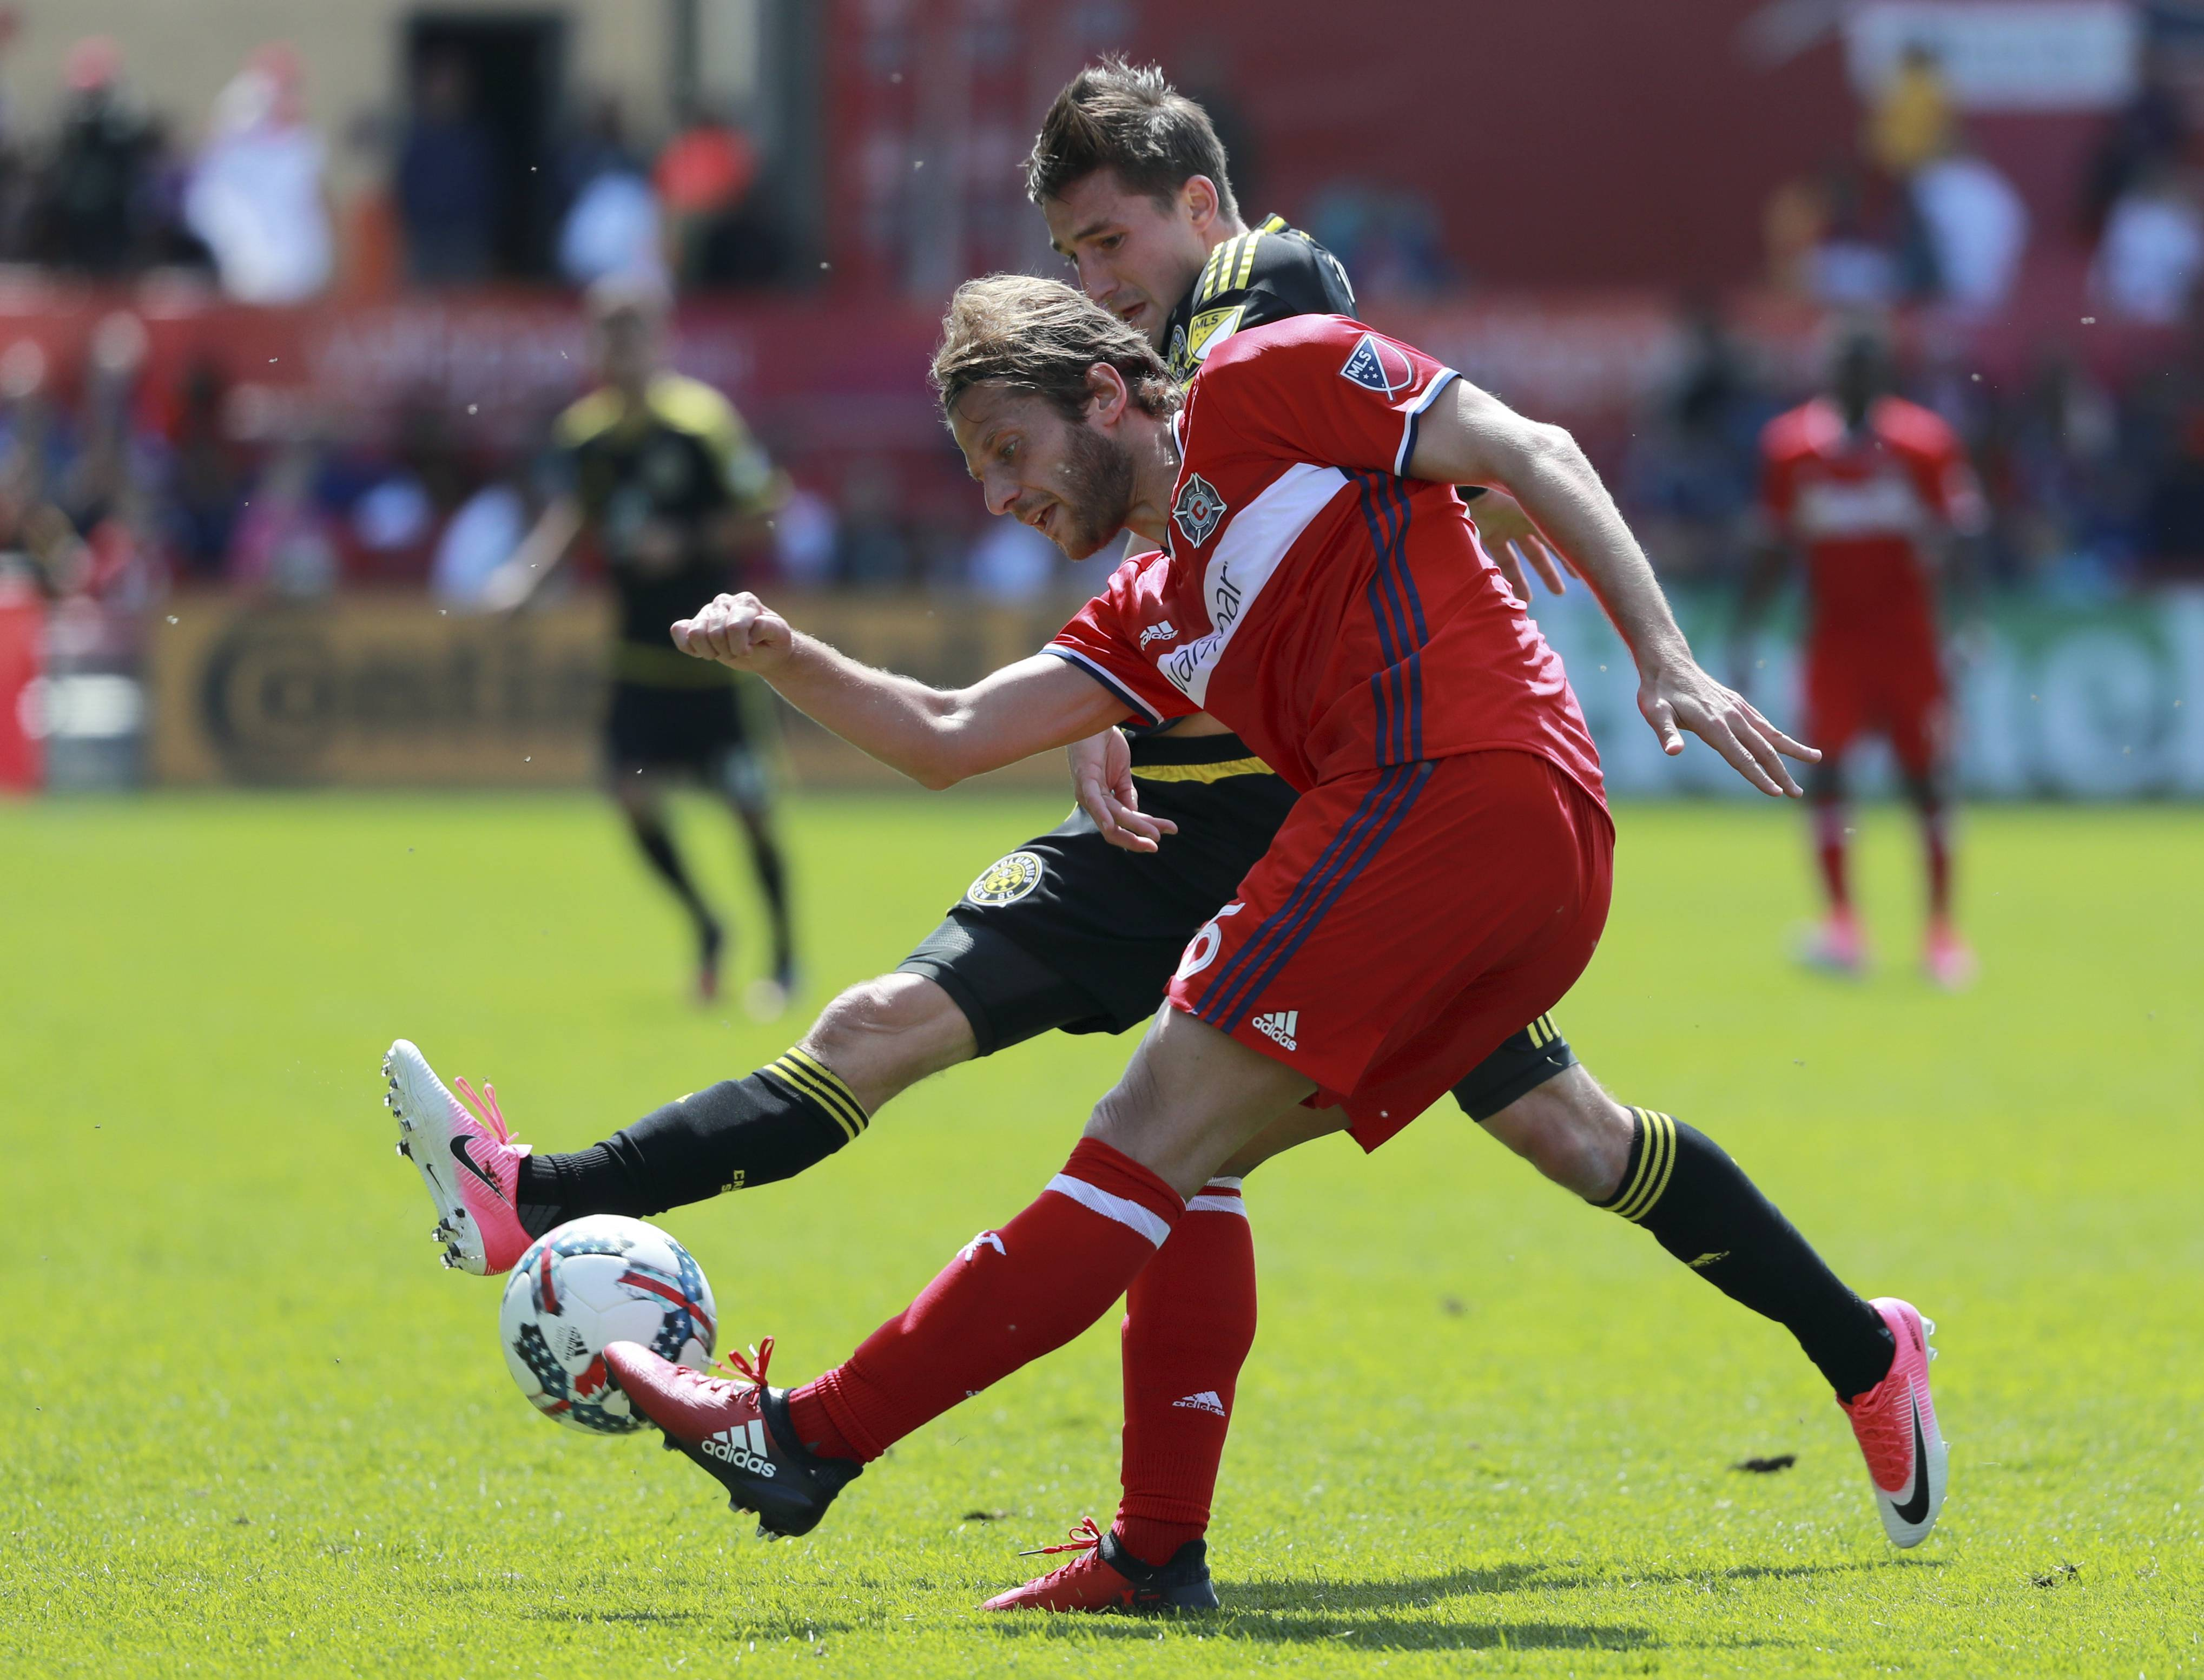 Chicago Fire defender Joao Meira (66) and Columbus Crew midfielder Ethan Finlay battle for the ball during the first half thier MLS match on April 8.